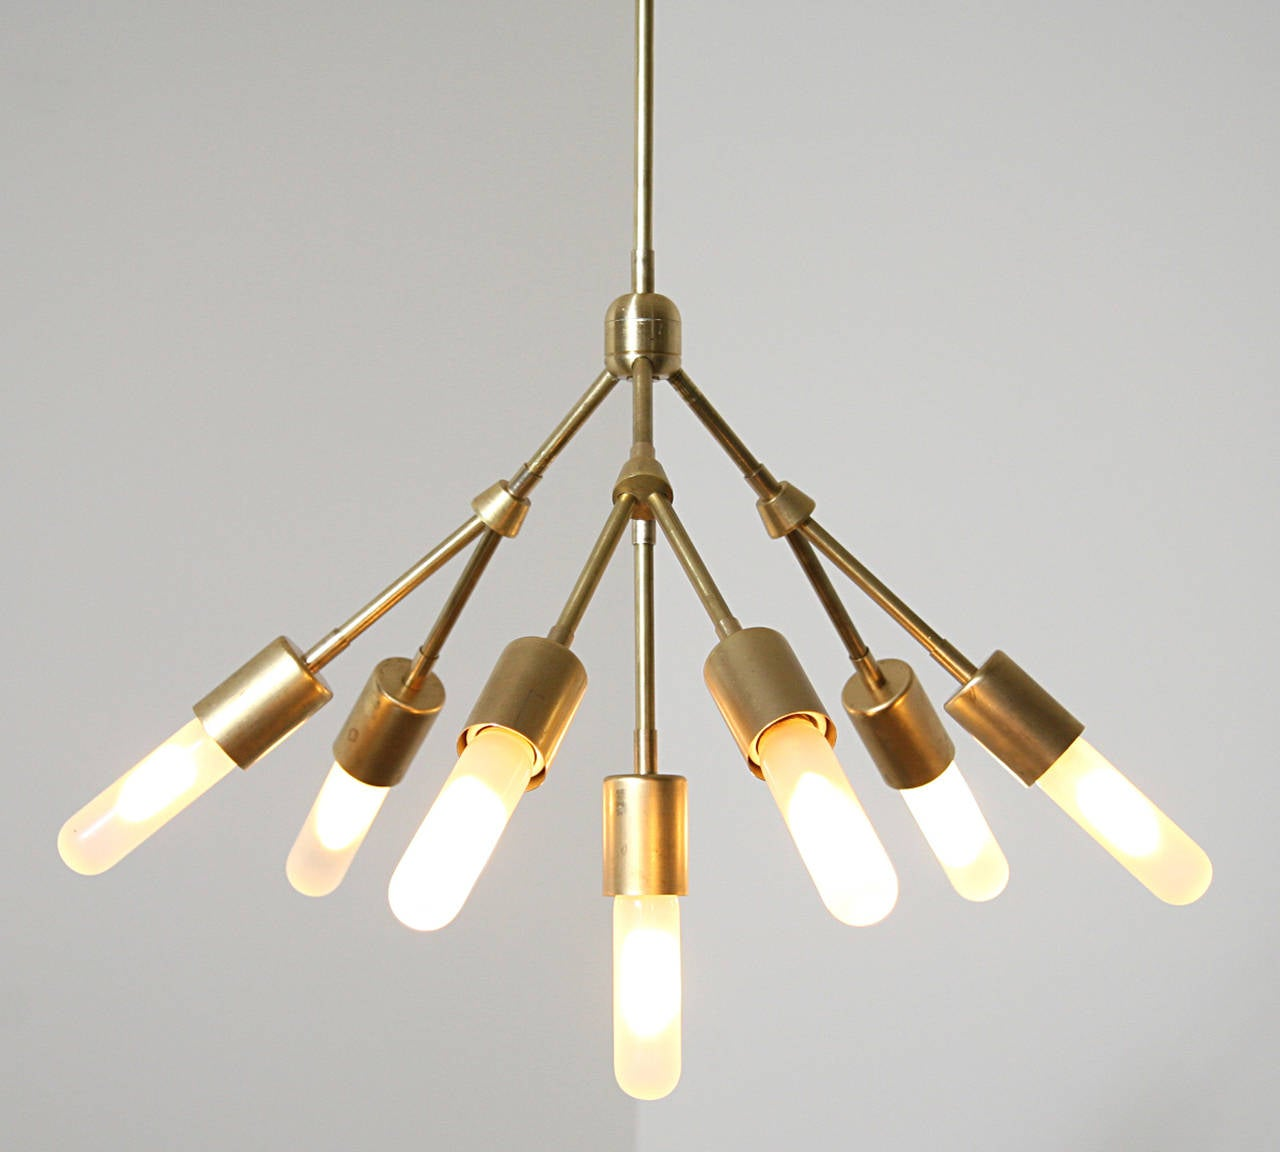 Orb Chandelier Light 14 Atomic Light Fixture Industrial: Seven Globe Bulbs Chandelier For Sale At 1stdibs